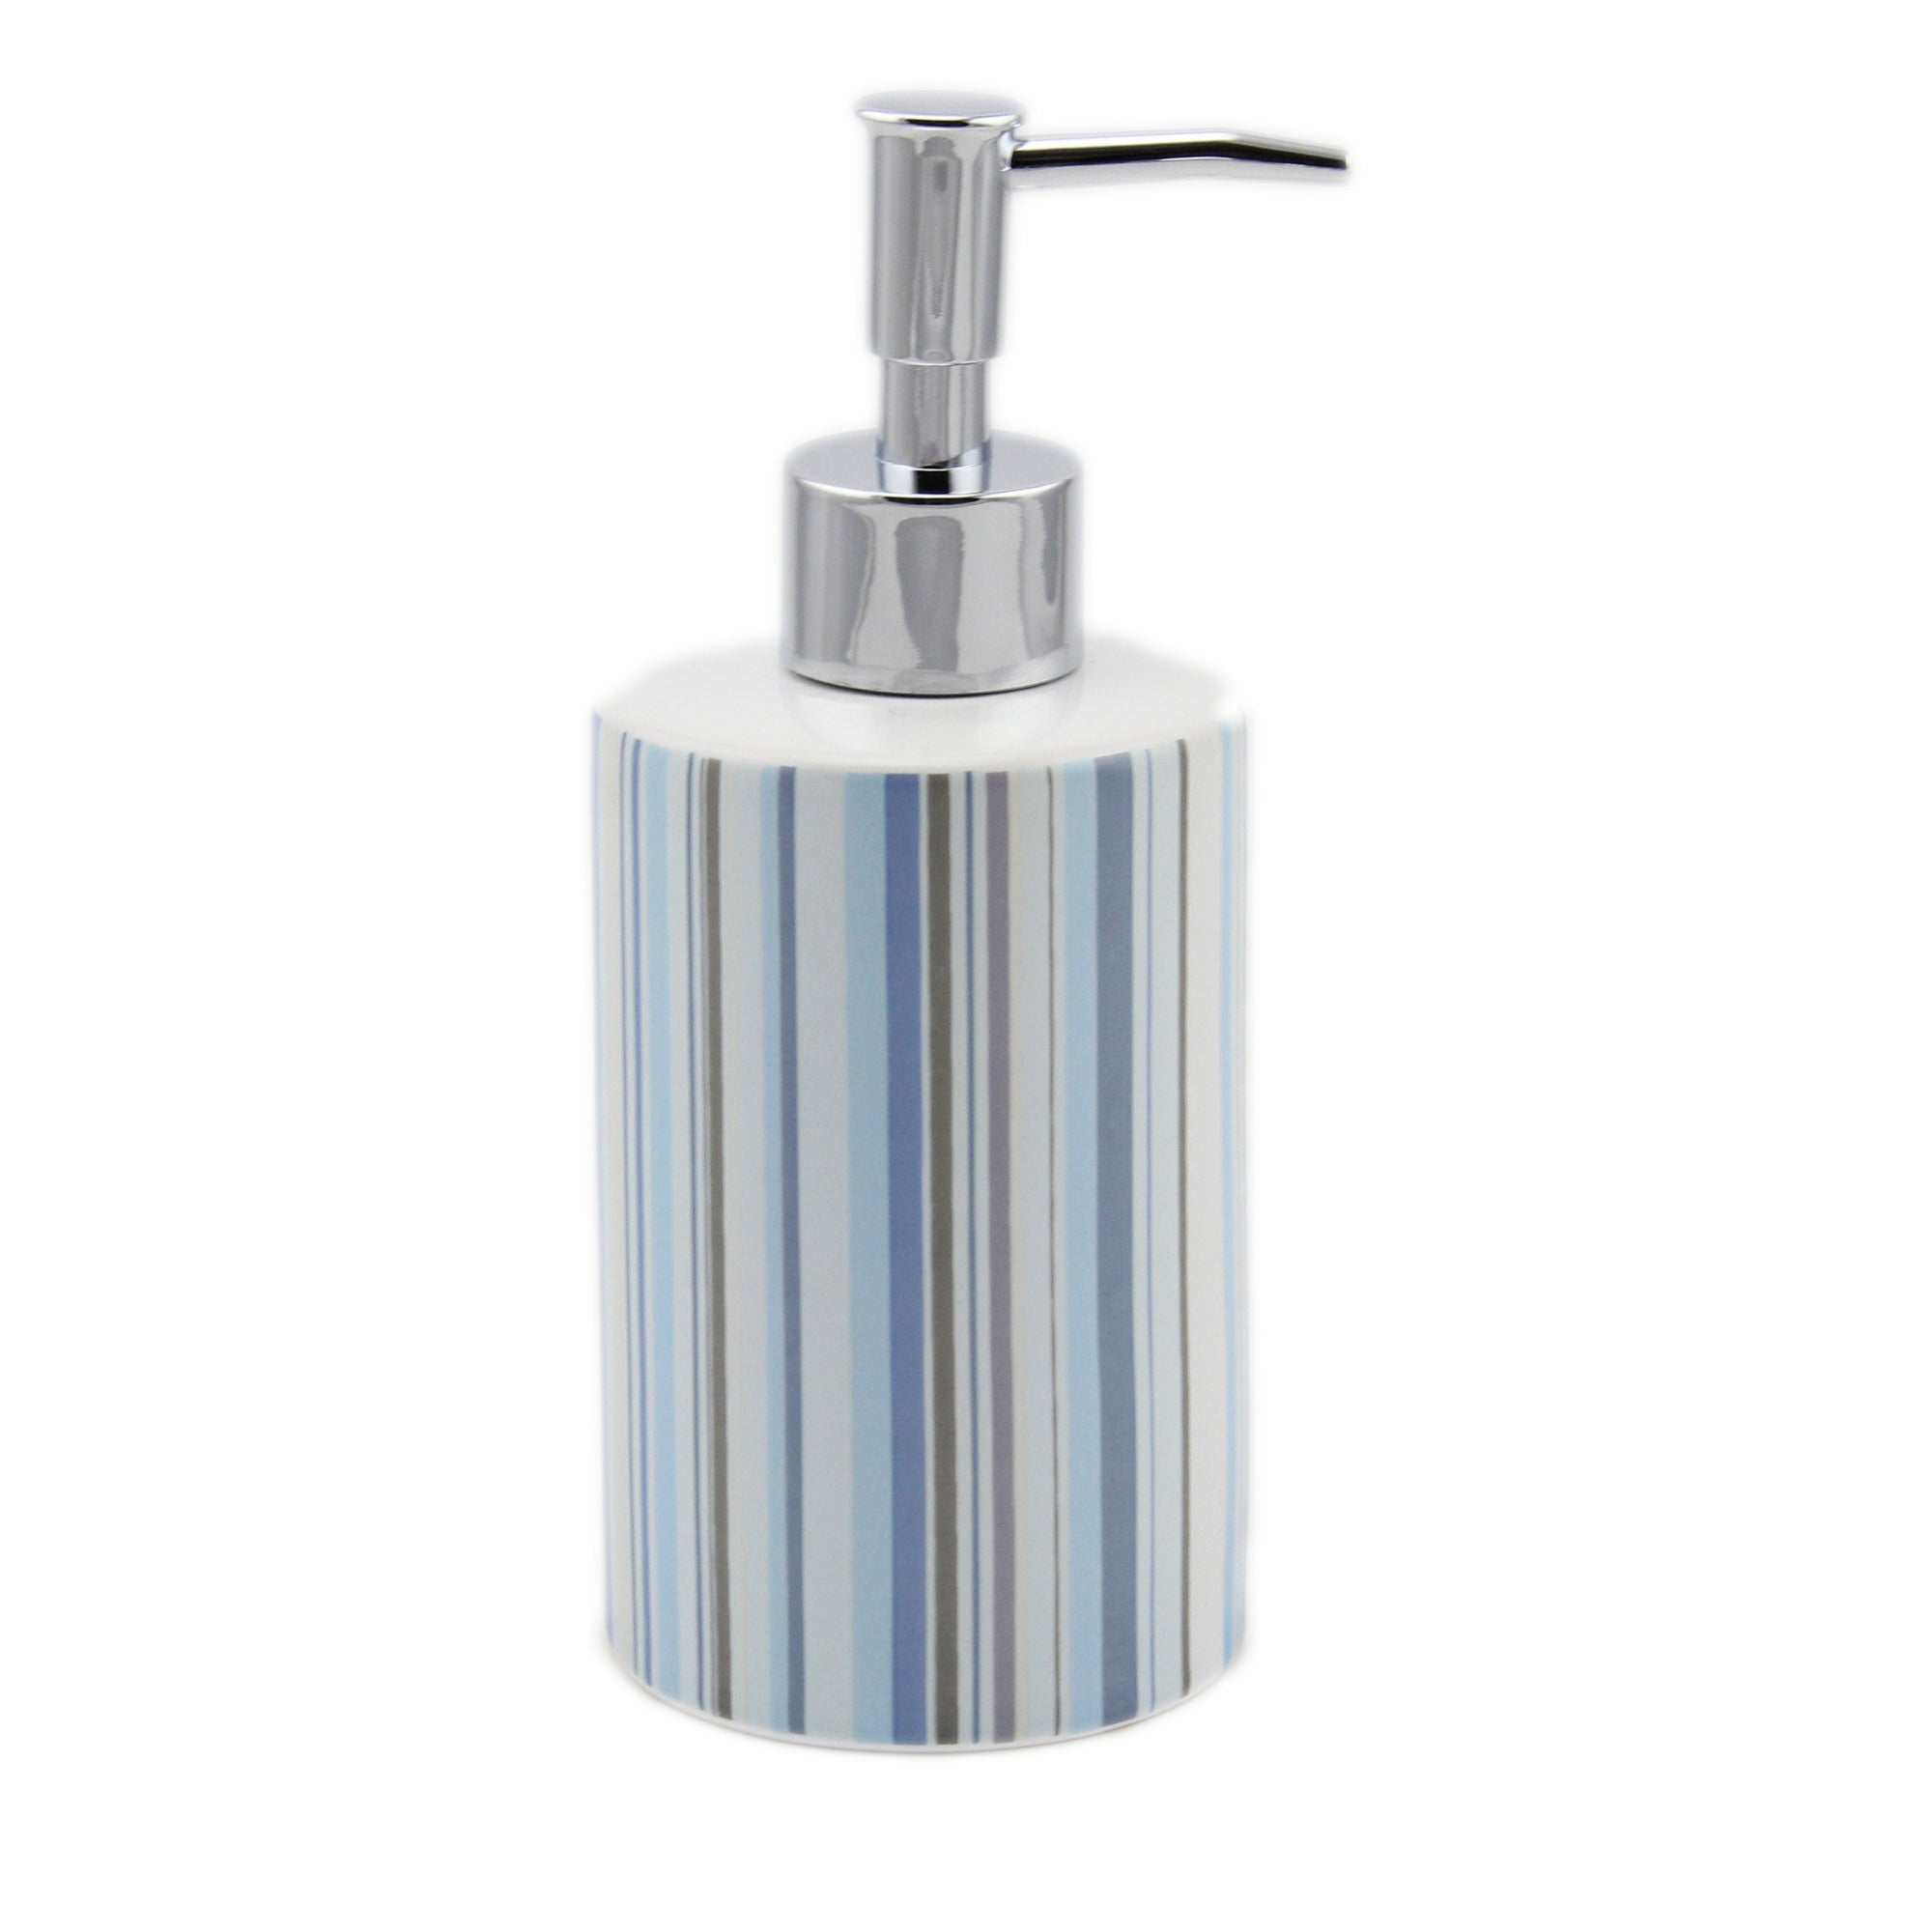 Teal Newhaven Collection Lotion Dispenser